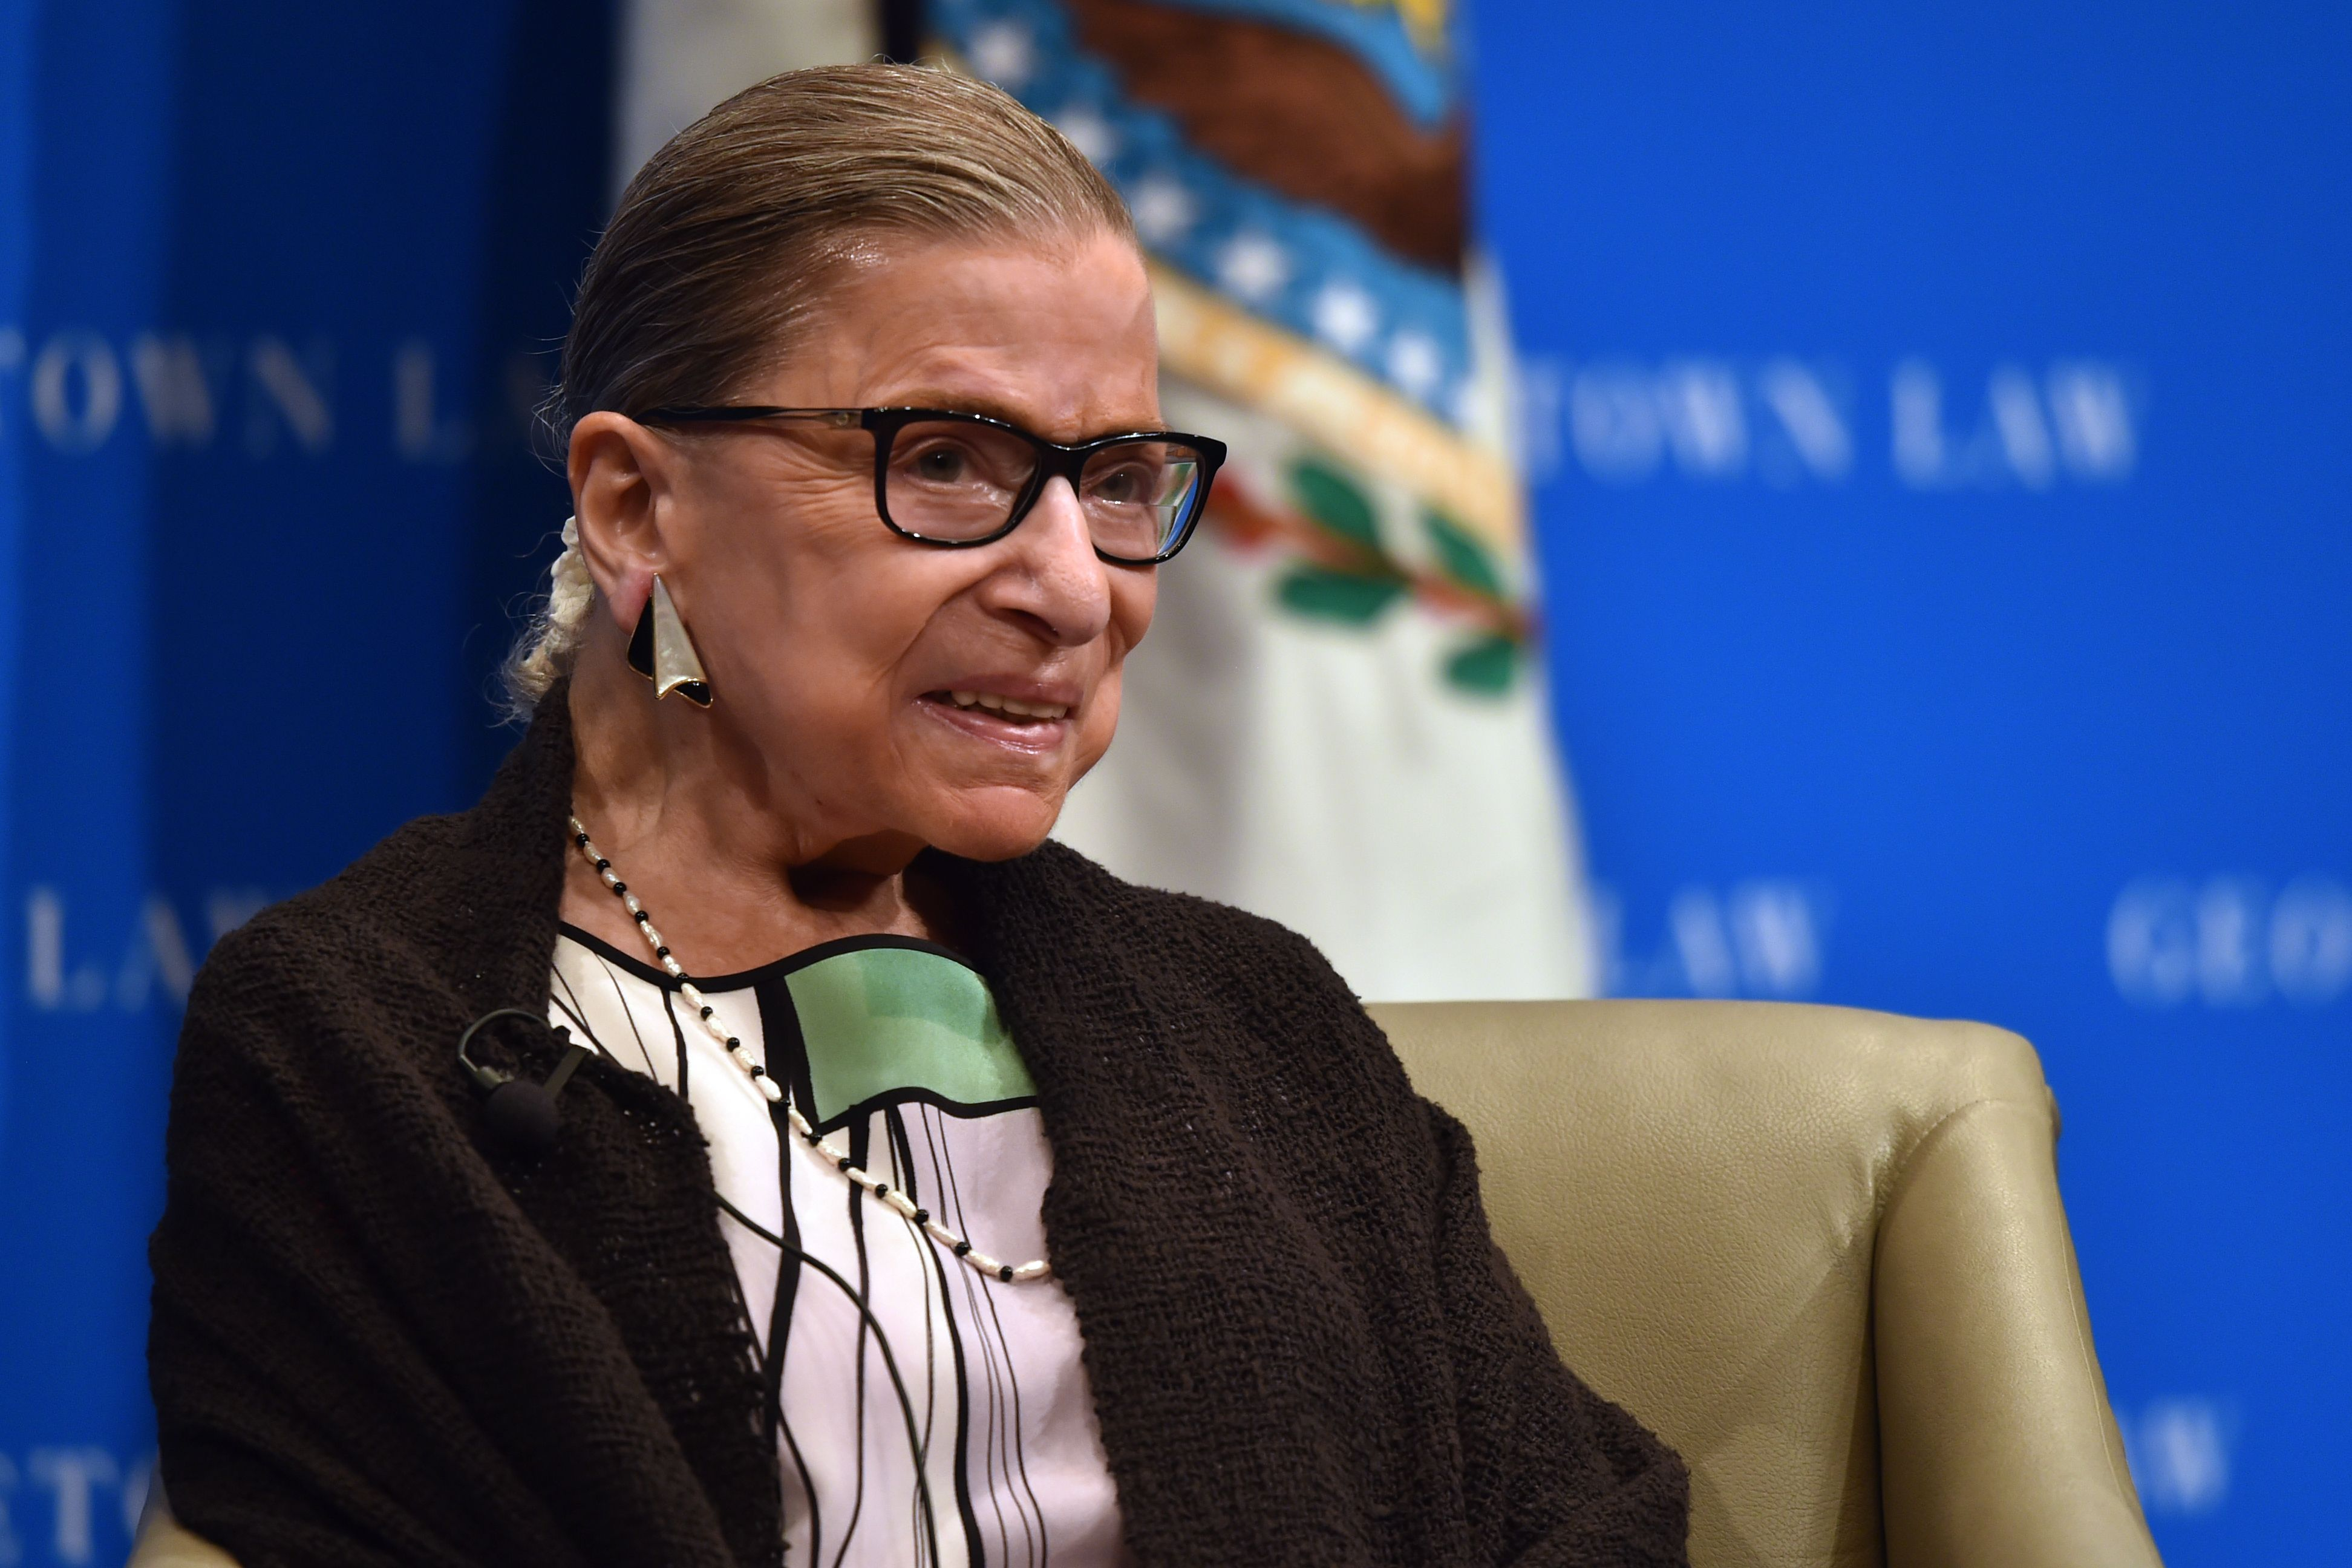 Senate resolution to honor Ruth Bader Ginsburg blocked after partisan fighting over language